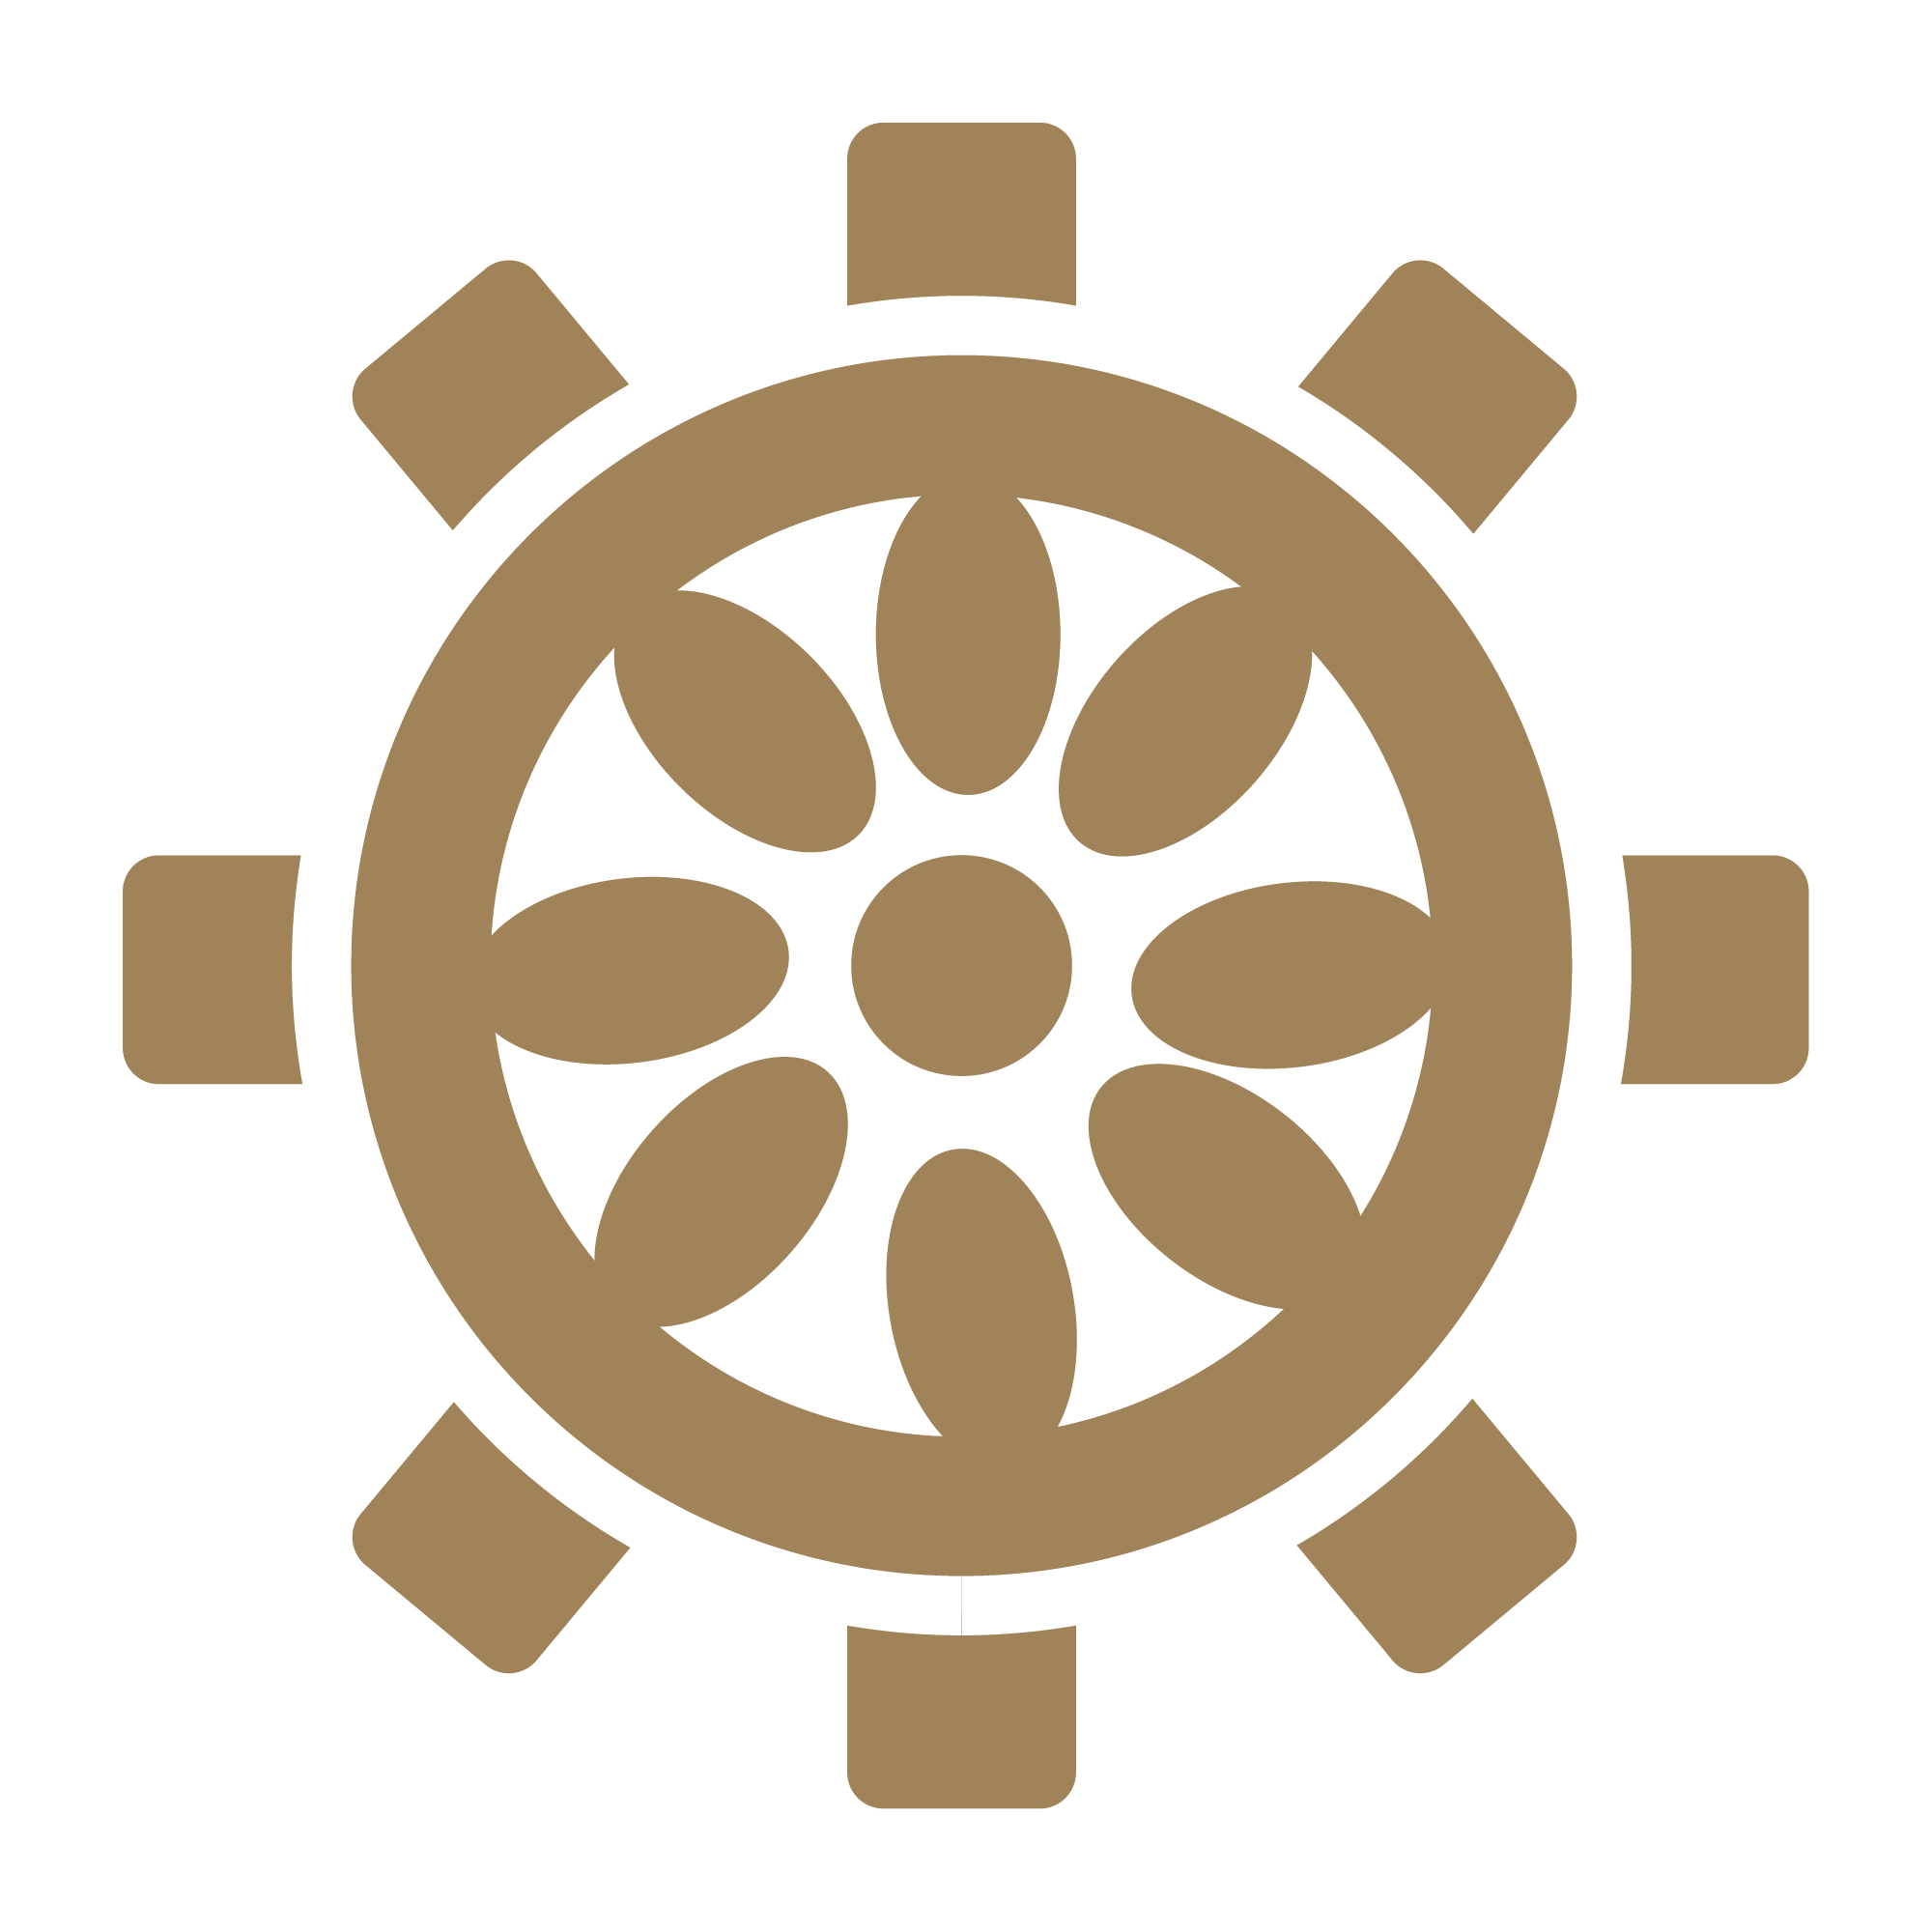 Circular design Icon Guided meditation for anxiety and depression, Body Scan Meditation and Relaxation